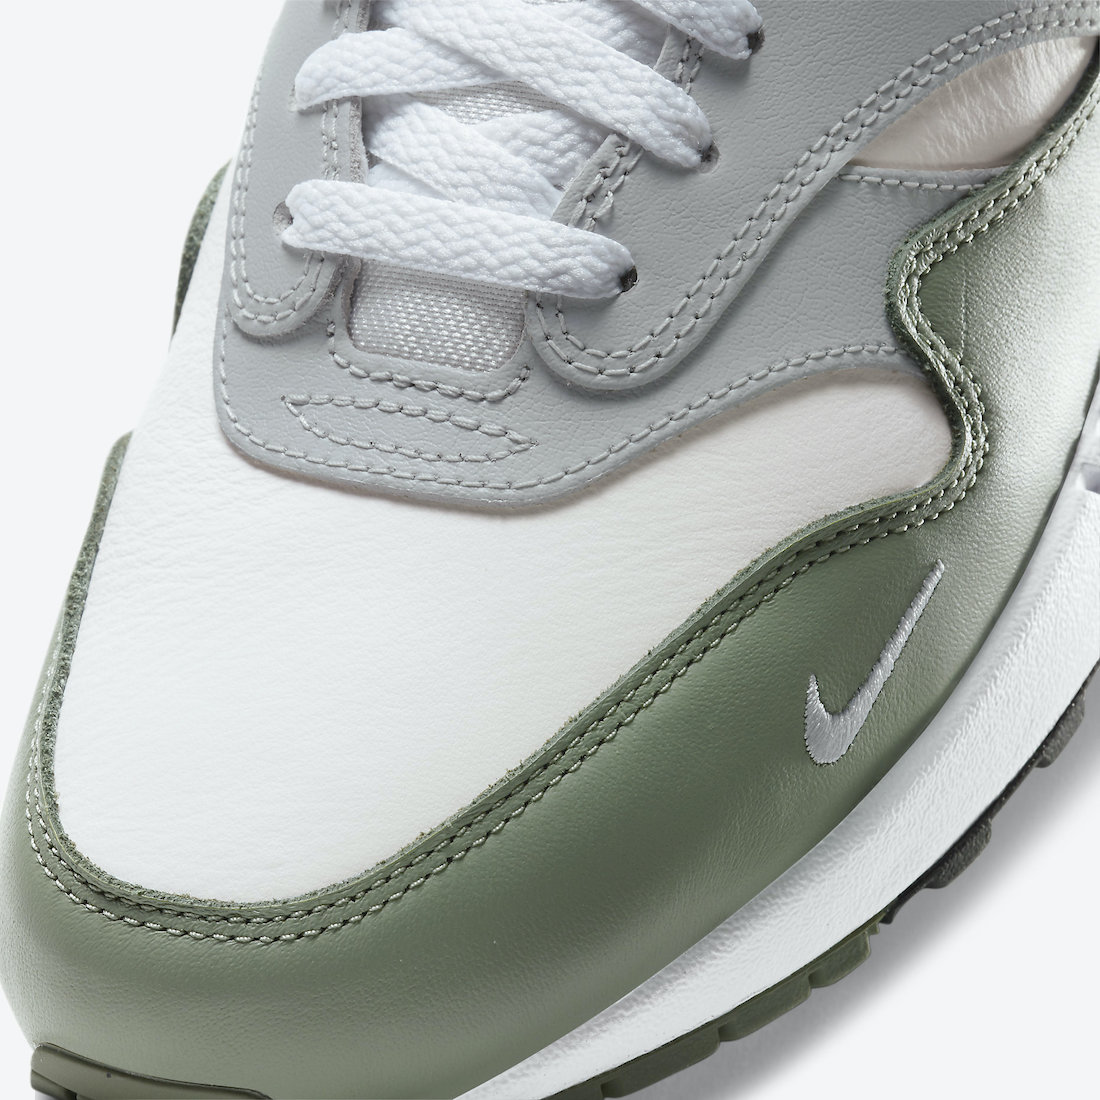 Nike-Air-Max-1-Spiral-Sage-DB5074-100-Release-Date-6